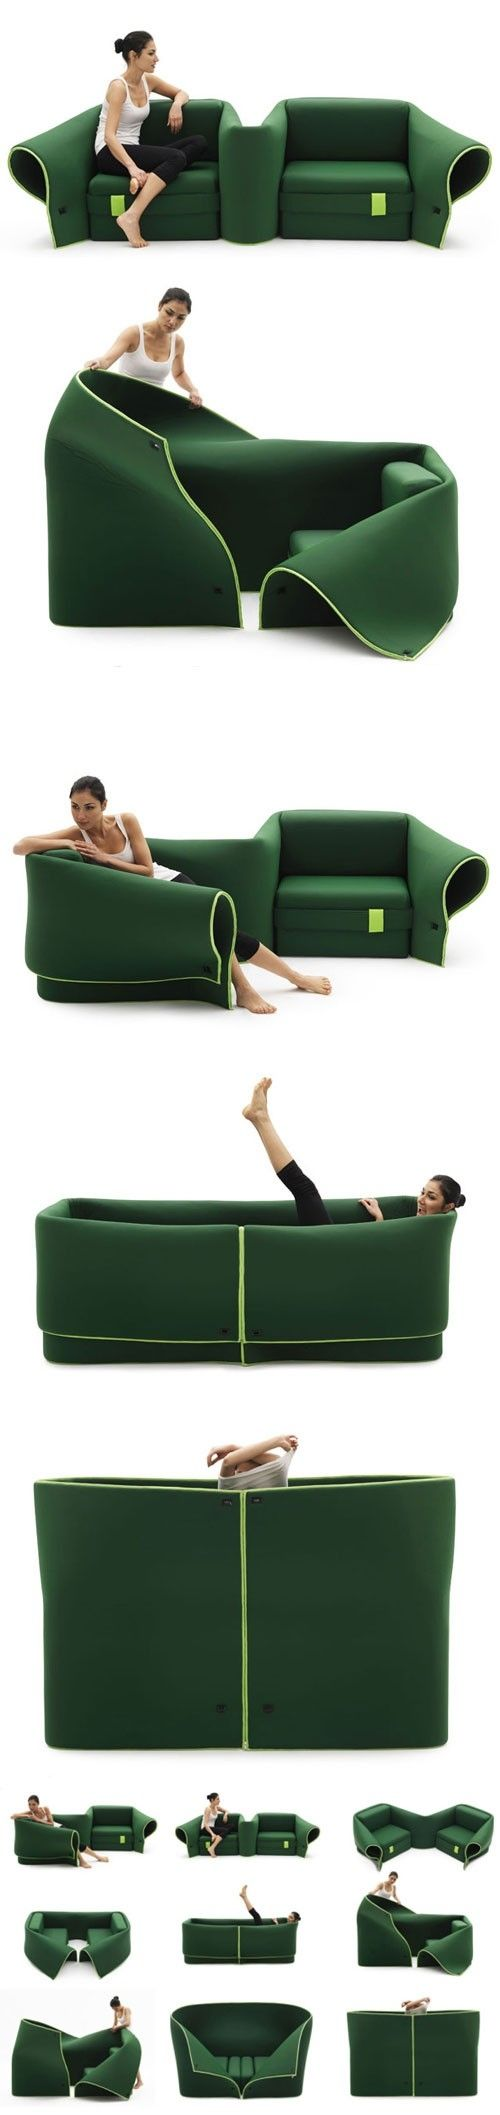 Wonderful Cool Couch Fort Ideas Like The Adult Version Of A So And Decorating